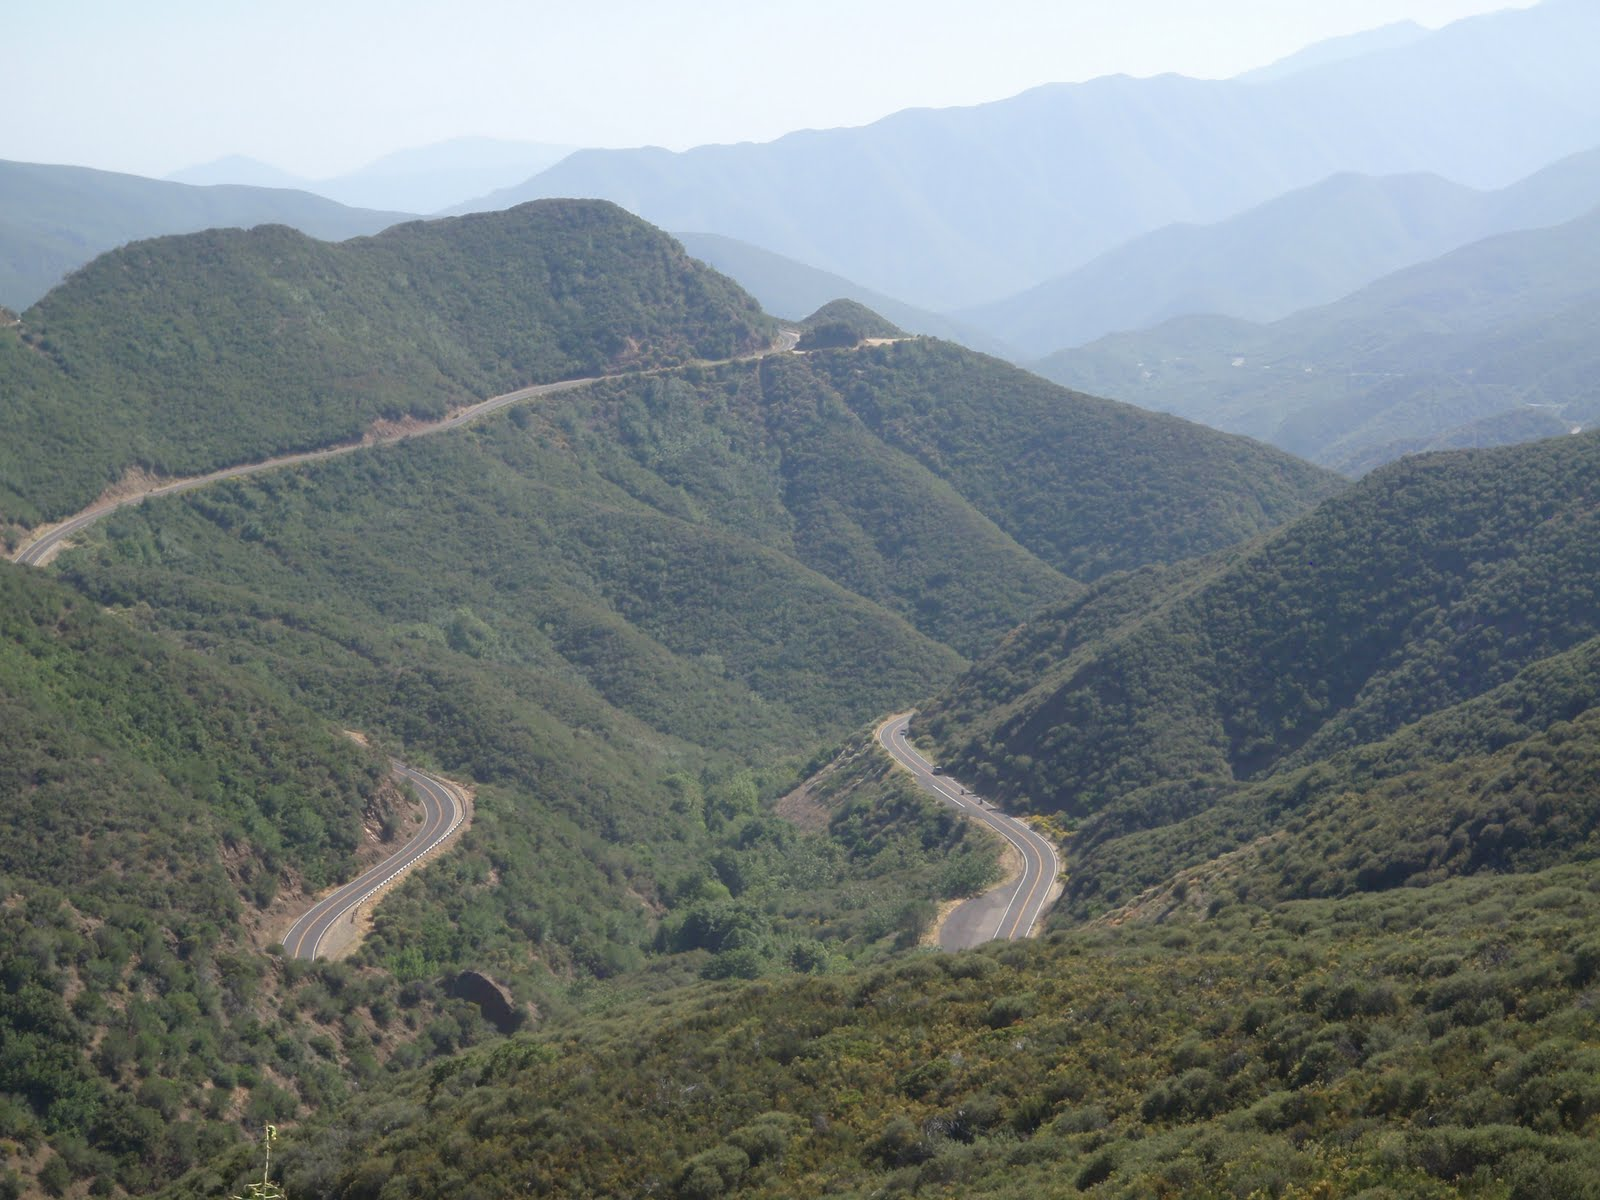 Highway 33 Ojai-Taft-Pine Mountain